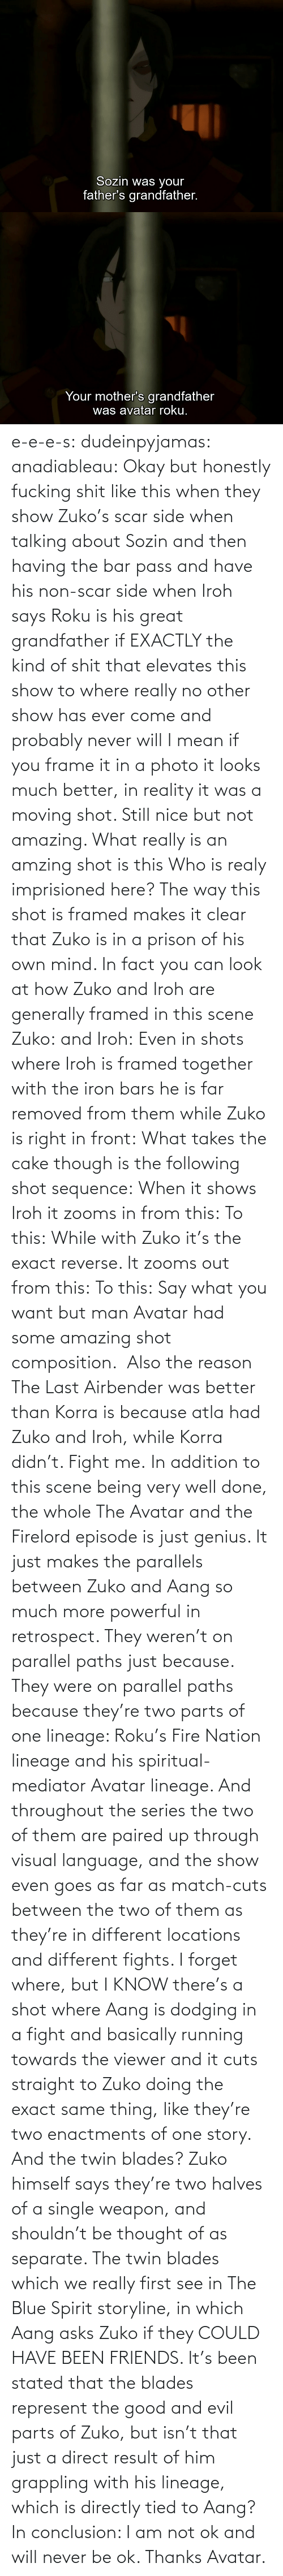 the way: e-e-e-s: dudeinpyjamas:   anadiableau: Okay but honestly fucking shit like this when they show Zuko's scar side when talking about Sozin and then having the bar pass and have his non-scar side when Iroh says Roku is his great grandfather if EXACTLY the kind of shit that elevates this show to where really no other show has ever come and probably never will I mean if you frame it in a photo it looks much better, in reality it was a moving shot. Still nice but not amazing. What really is an amzing shot is this Who is realy imprisioned here? The way this shot is framed makes it clear that Zuko is in a prison of his own mind. In fact you can look at how Zuko and Iroh are generally framed in this scene Zuko: and Iroh: Even in shots where Iroh is framed together with the iron bars he is far removed from them while Zuko is right in front:  What takes the cake though is the following shot sequence: When it shows Iroh it zooms in from this: To this: While with Zuko it's the exact reverse. It zooms out from this: To this: Say what you want but man Avatar had some amazing shot composition.   Also the reason The Last Airbender was better than Korra is because atla had Zuko and Iroh, while Korra didn't. Fight me.    In addition to this scene being very well done, the whole The Avatar and the Firelord episode is just genius.  It just makes the parallels between Zuko and Aang so much more powerful in retrospect.  They weren't on parallel paths just because.  They were on parallel paths because they're two parts of one lineage: Roku's Fire Nation lineage and his spiritual-mediator Avatar lineage.  And throughout the series the two of them are paired up through visual language, and the show even goes as far as match-cuts between the two of them as they're in different locations and different fights.  I forget where, but I KNOW there's a shot where Aang is dodging in a fight and basically running towards the viewer and it cuts straight to Zuko doing the exact same thing, like they're two enactments of one story.   And the twin blades?  Zuko himself says they're two halves of a single weapon, and shouldn't be thought of as separate.  The twin blades which we really first see in The Blue Spirit storyline, in which Aang asks Zuko if they COULD HAVE BEEN FRIENDS.  It's been stated that the blades represent the good and evil parts of Zuko, but isn't that just a direct result of him grappling with his lineage, which is directly tied to Aang? In conclusion: I am not ok and will never be ok.  Thanks Avatar.